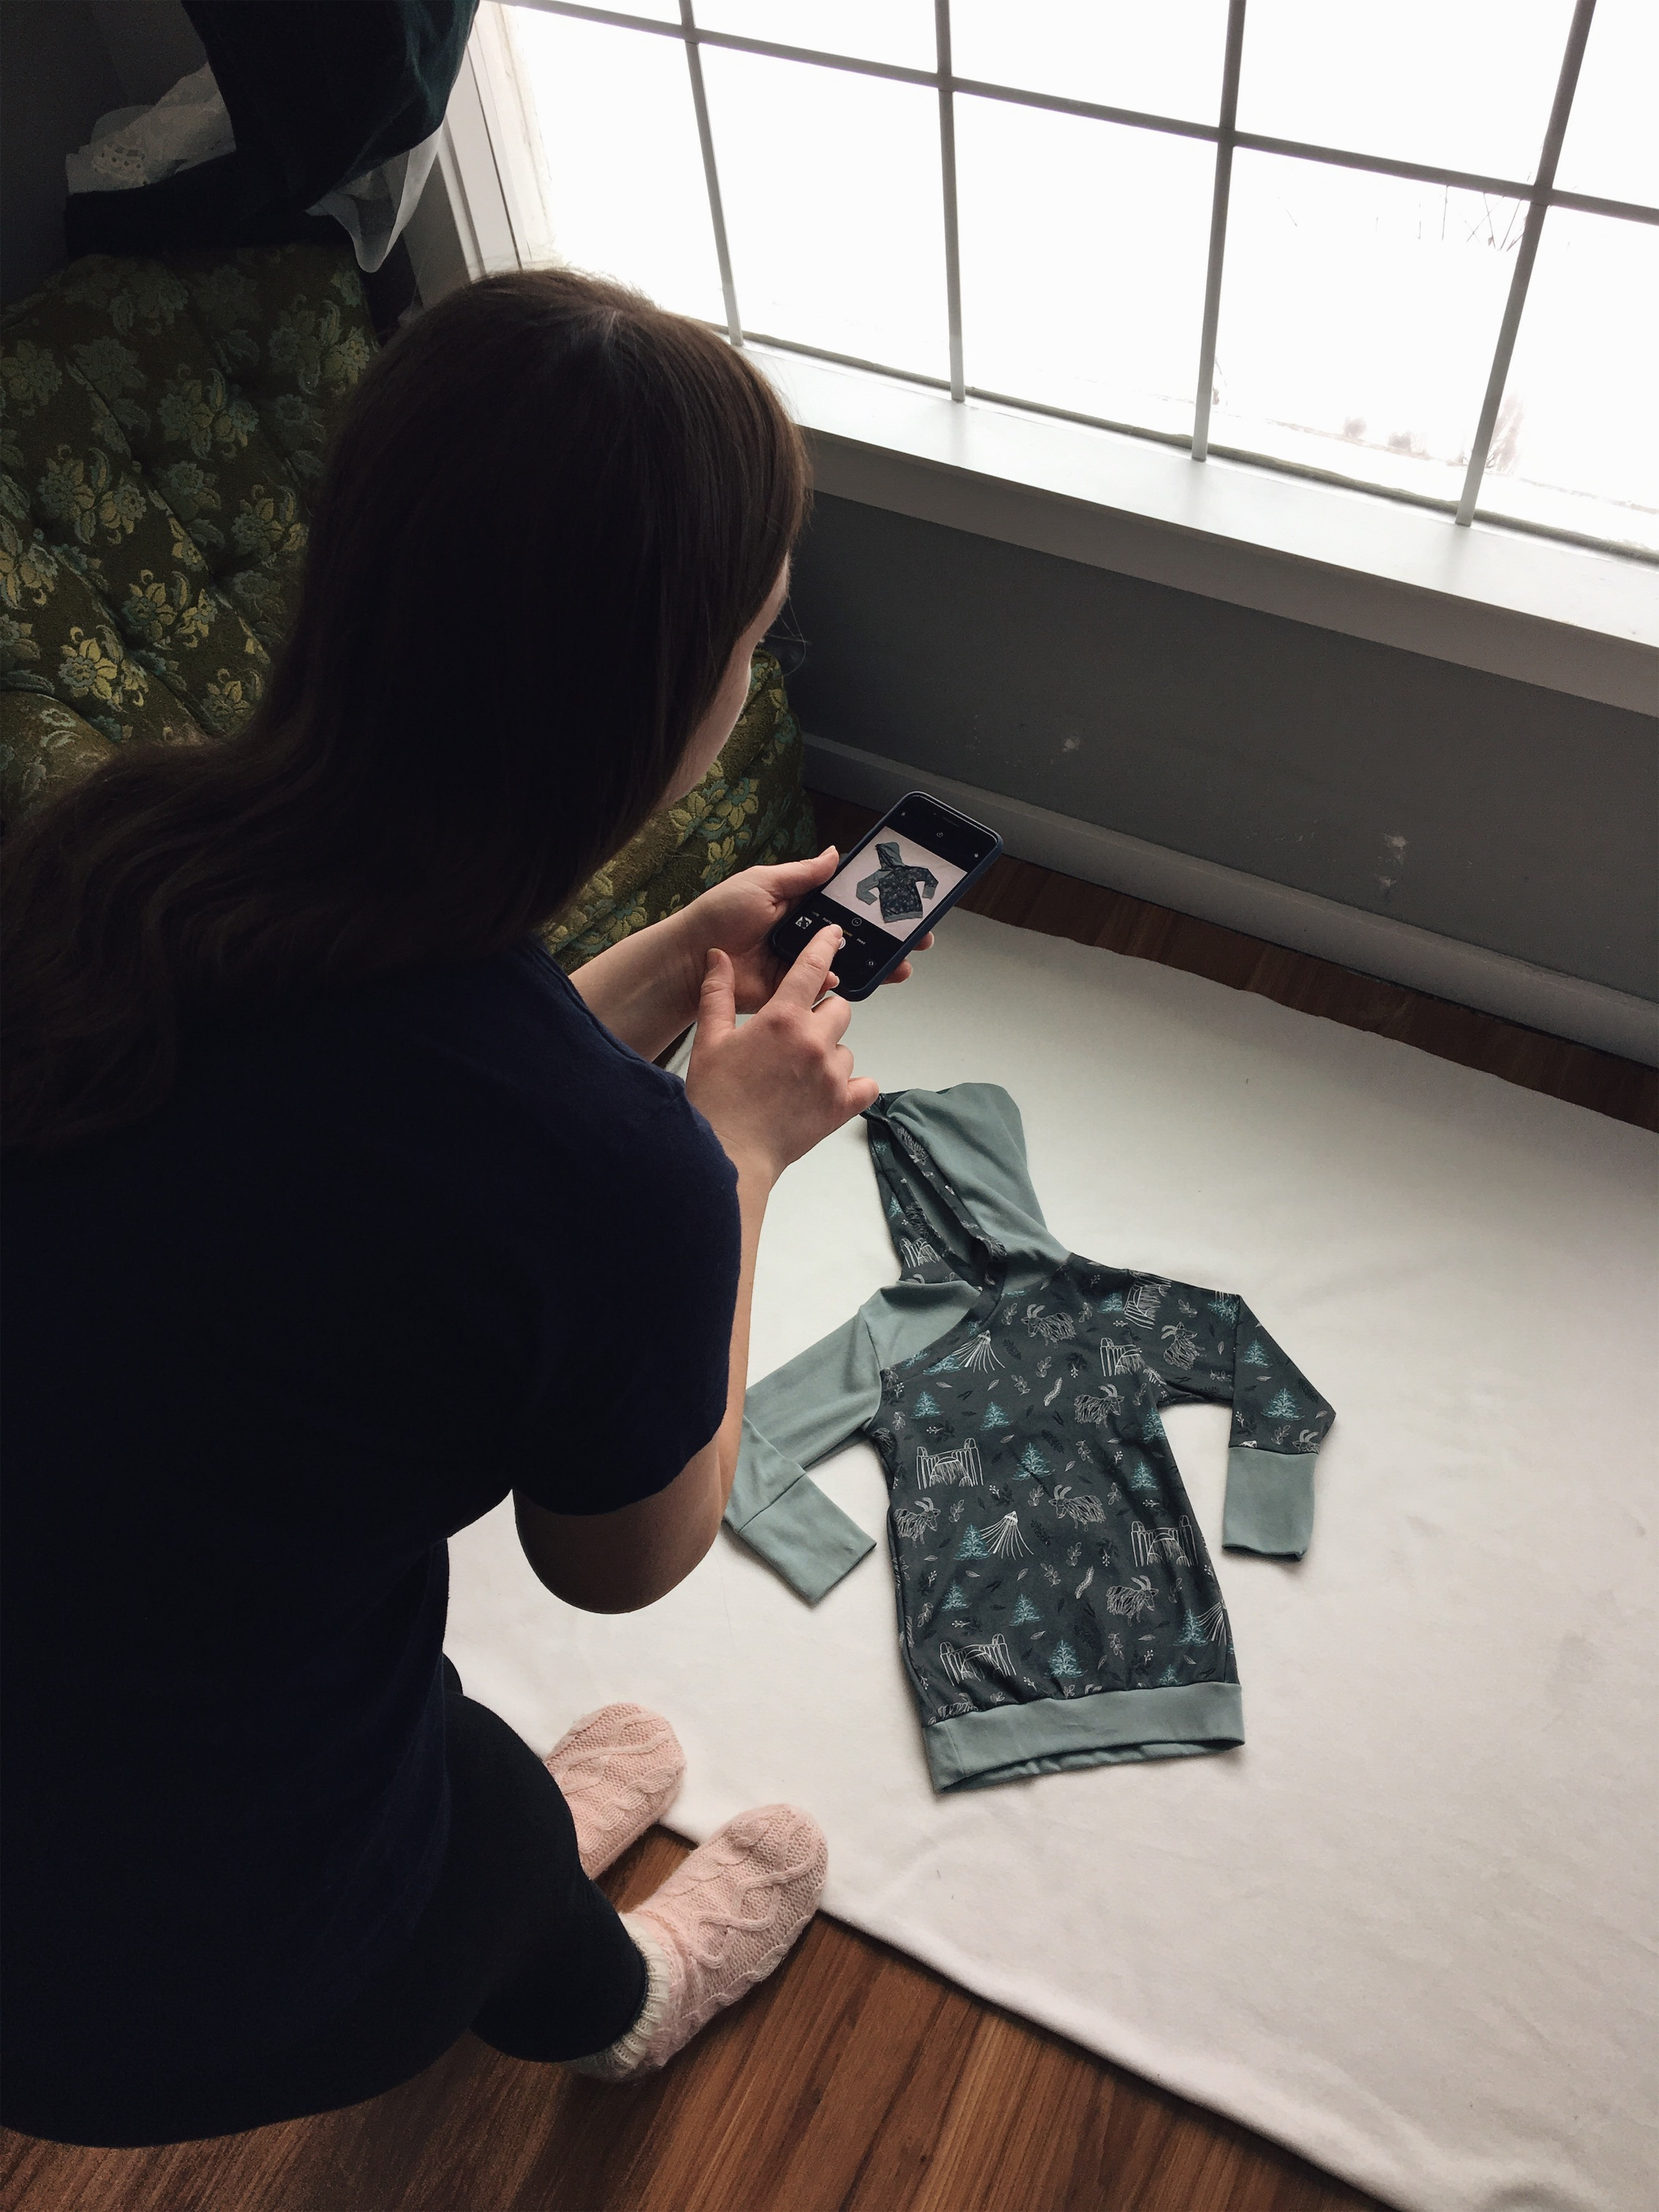 Woman taking a product photo with an iPhone.